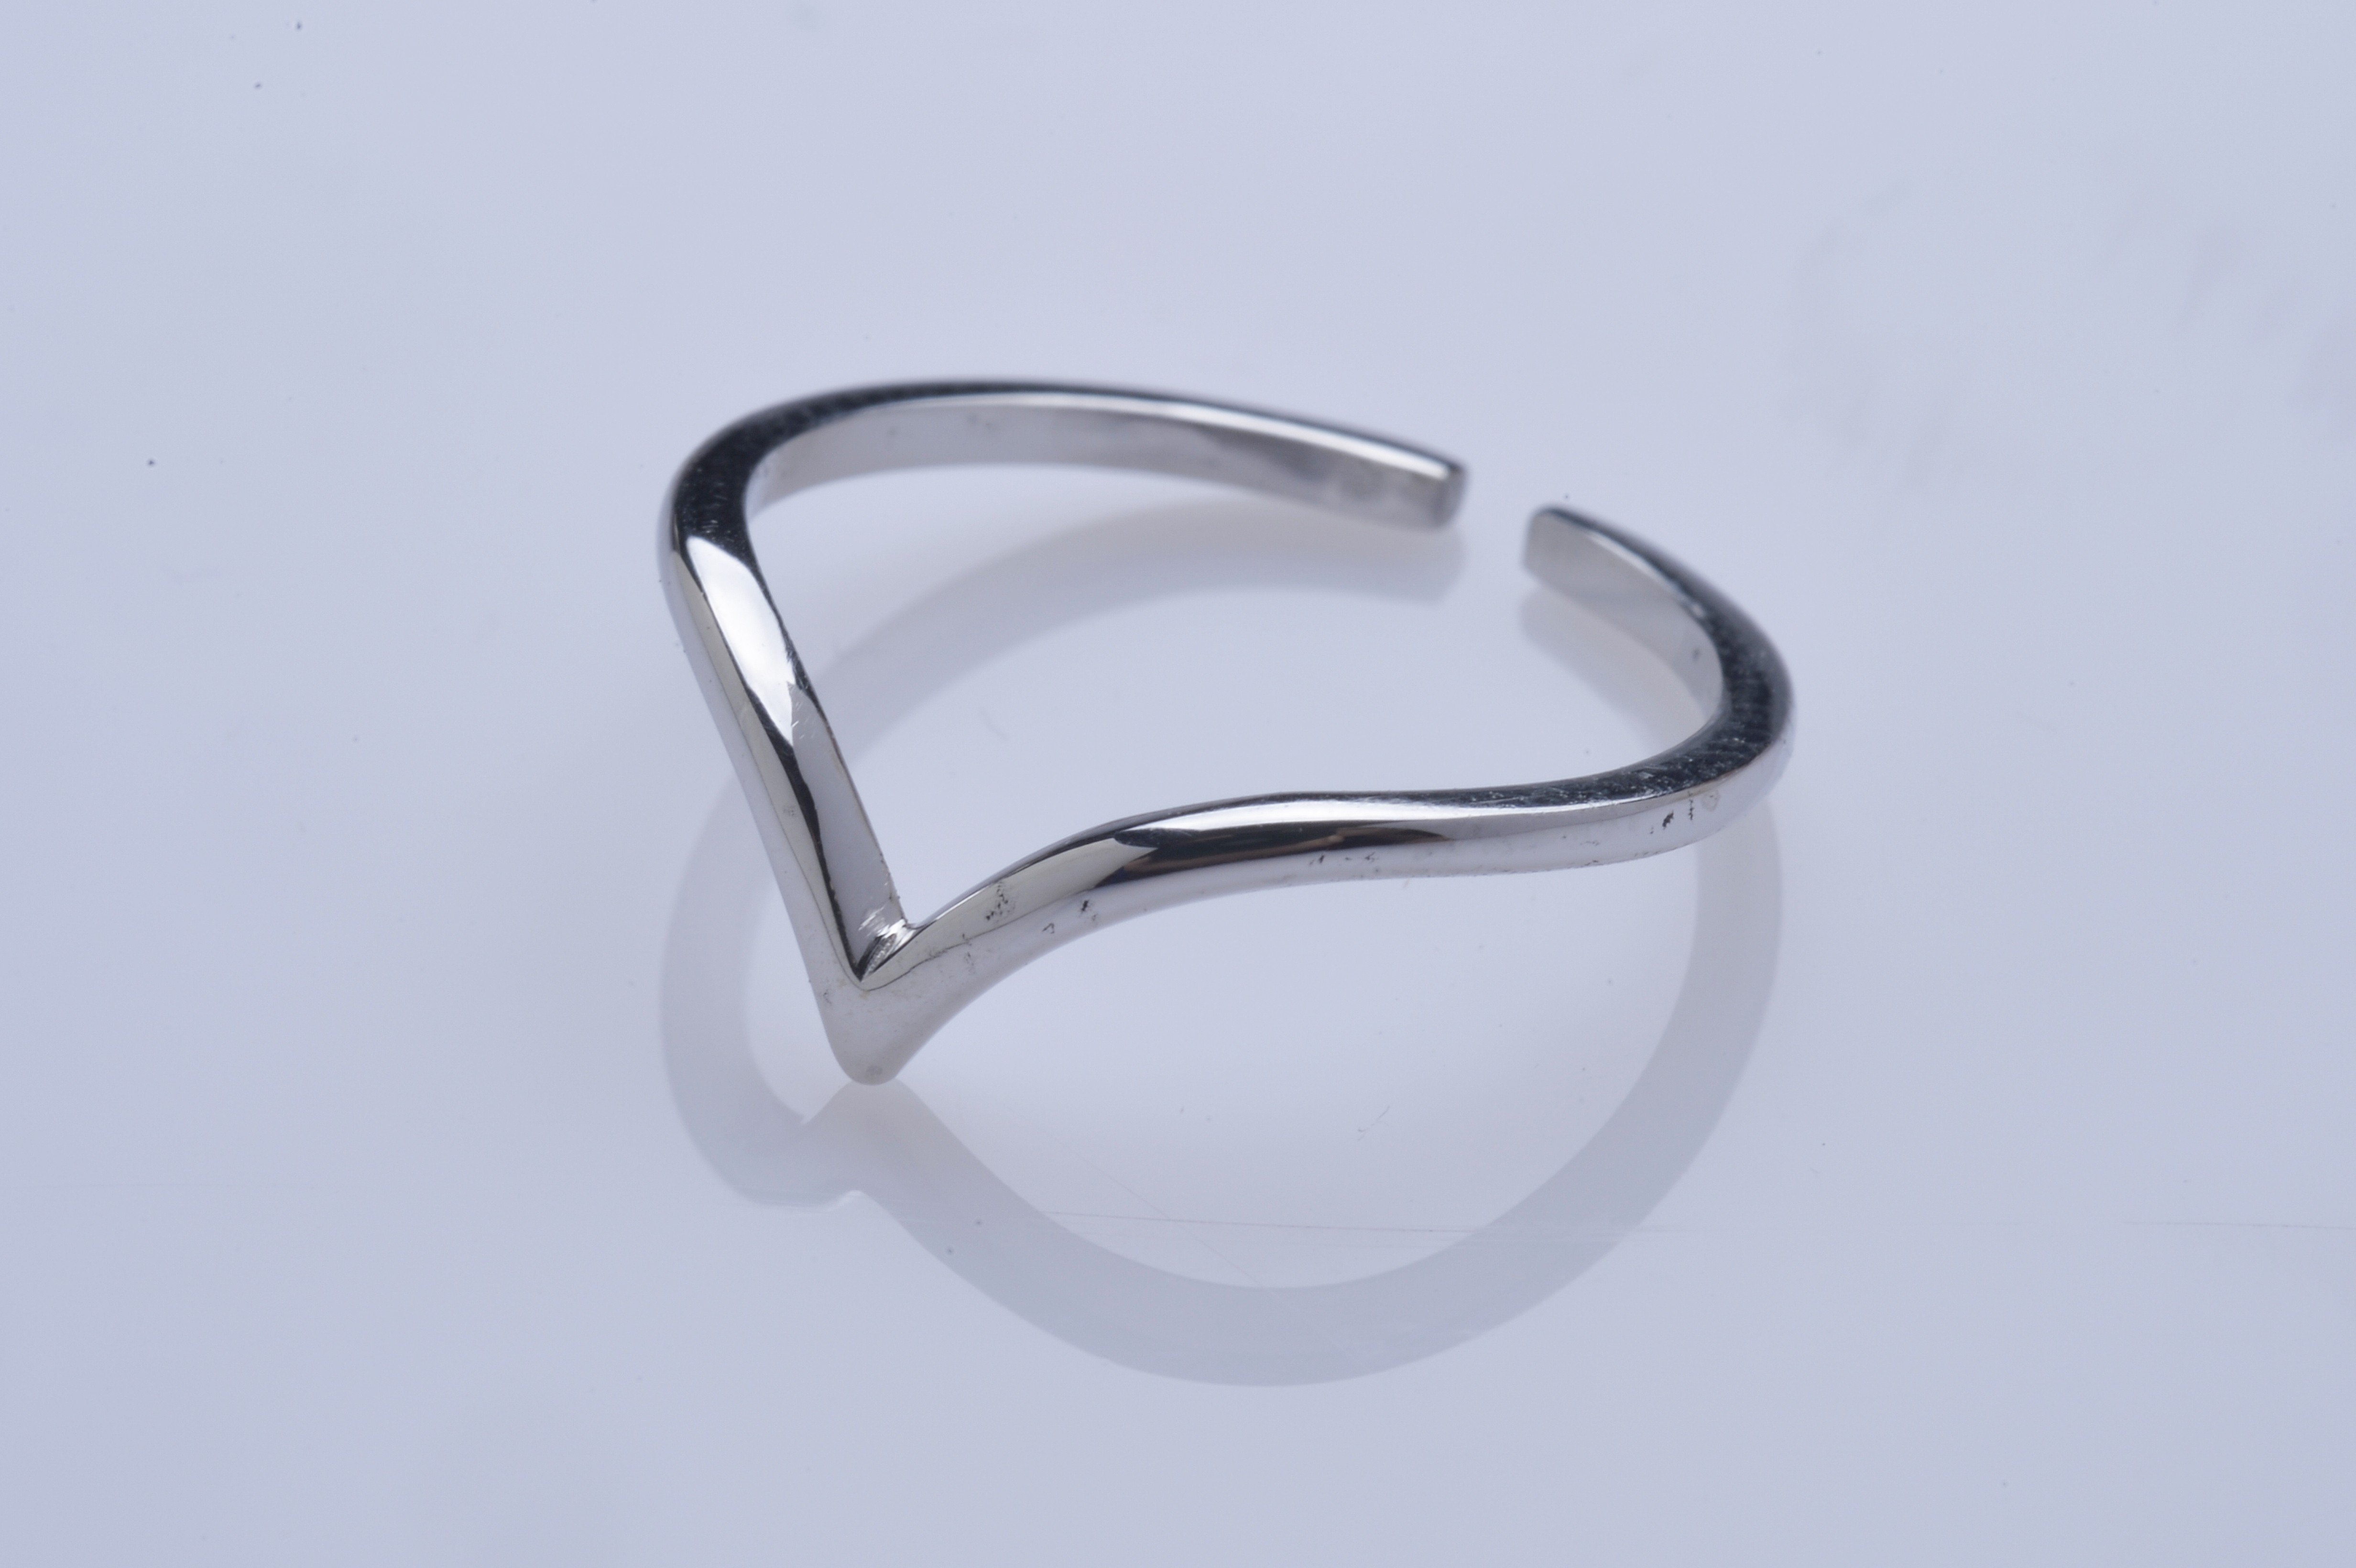 Bague de pied Pointe - Or blc 18 cts